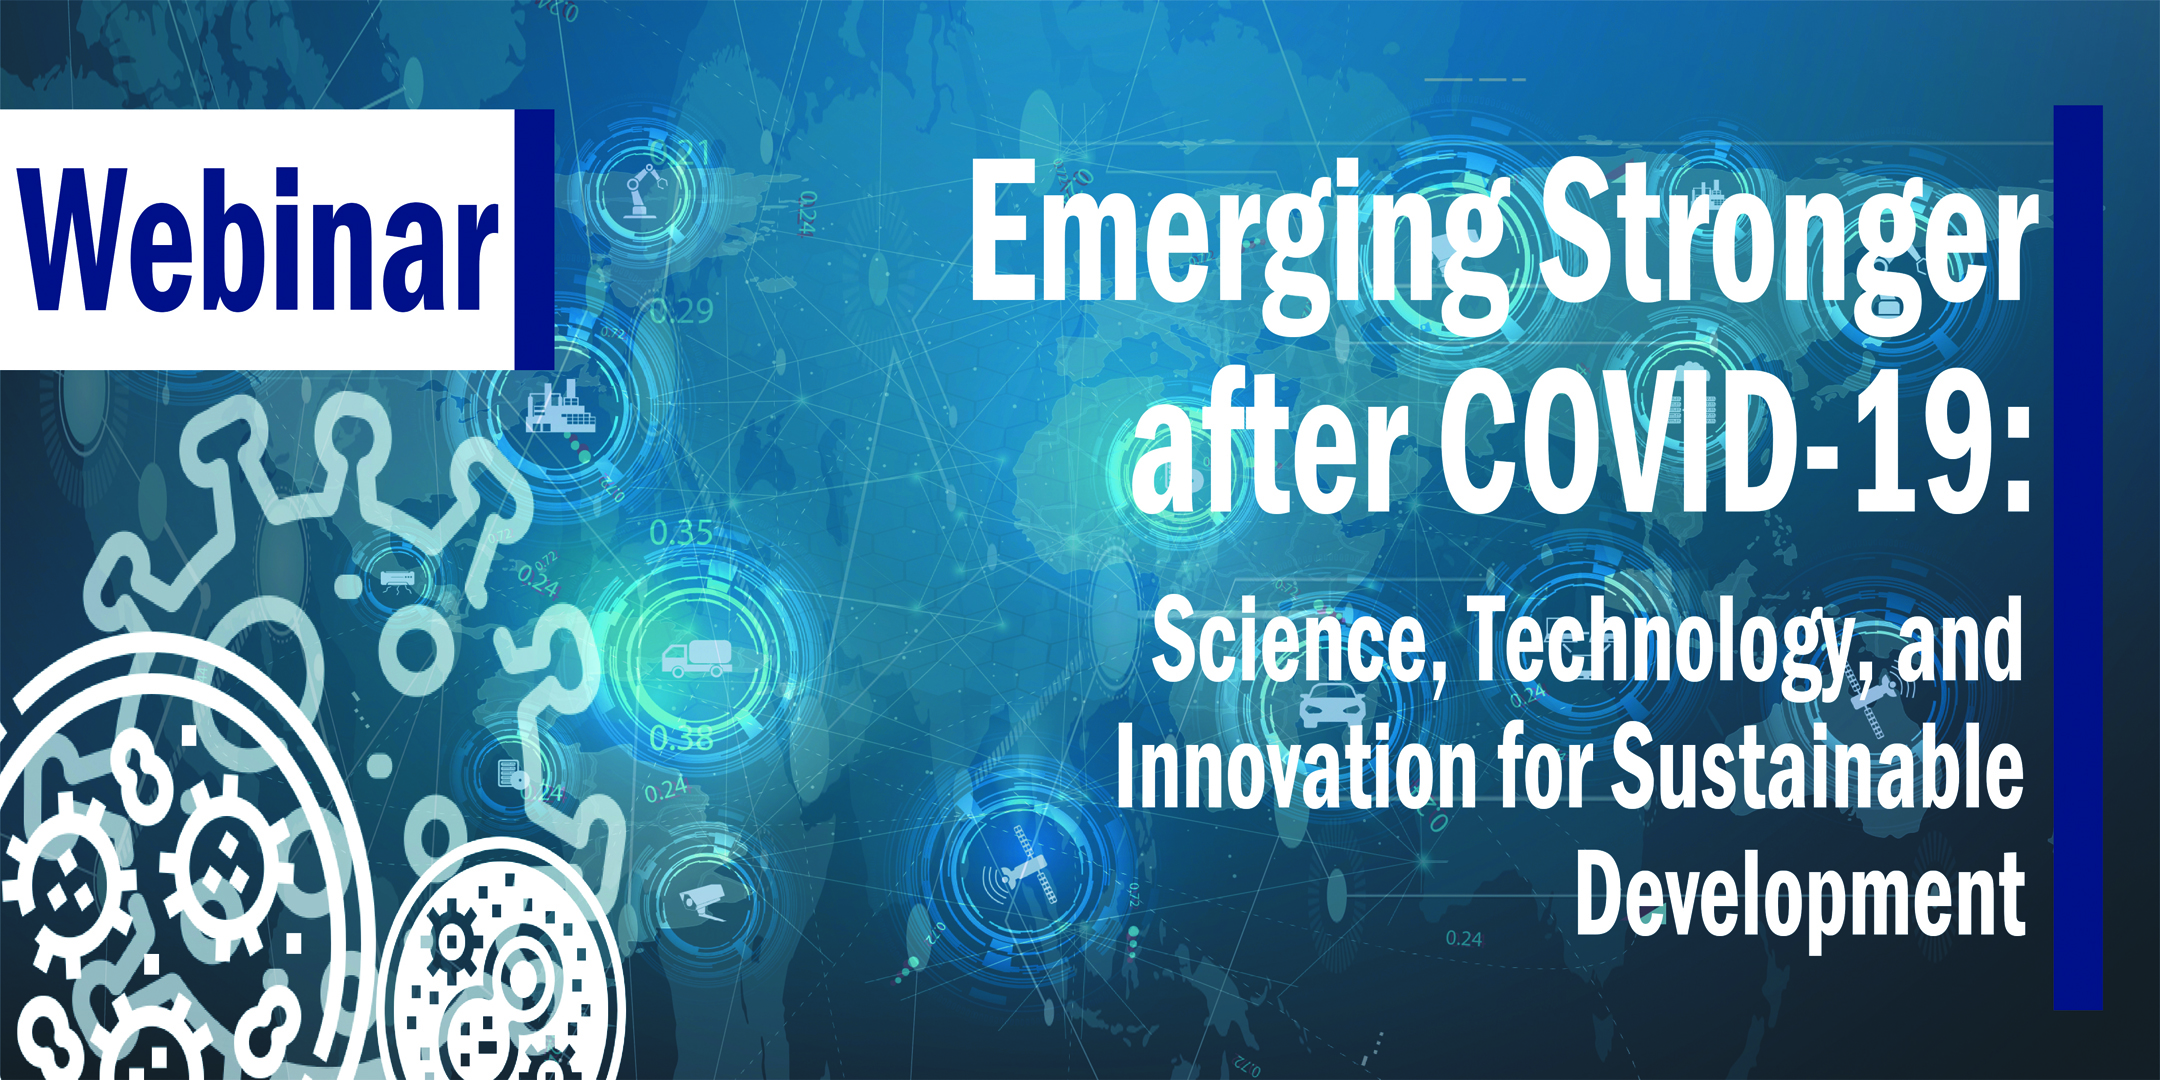 TaiwanICDF 2020 United Nations High-Level Political Forum Side Event Webinar -- Emerging Stronger after COVID-19: Science, Technology, and Innovation for Sustainable Development